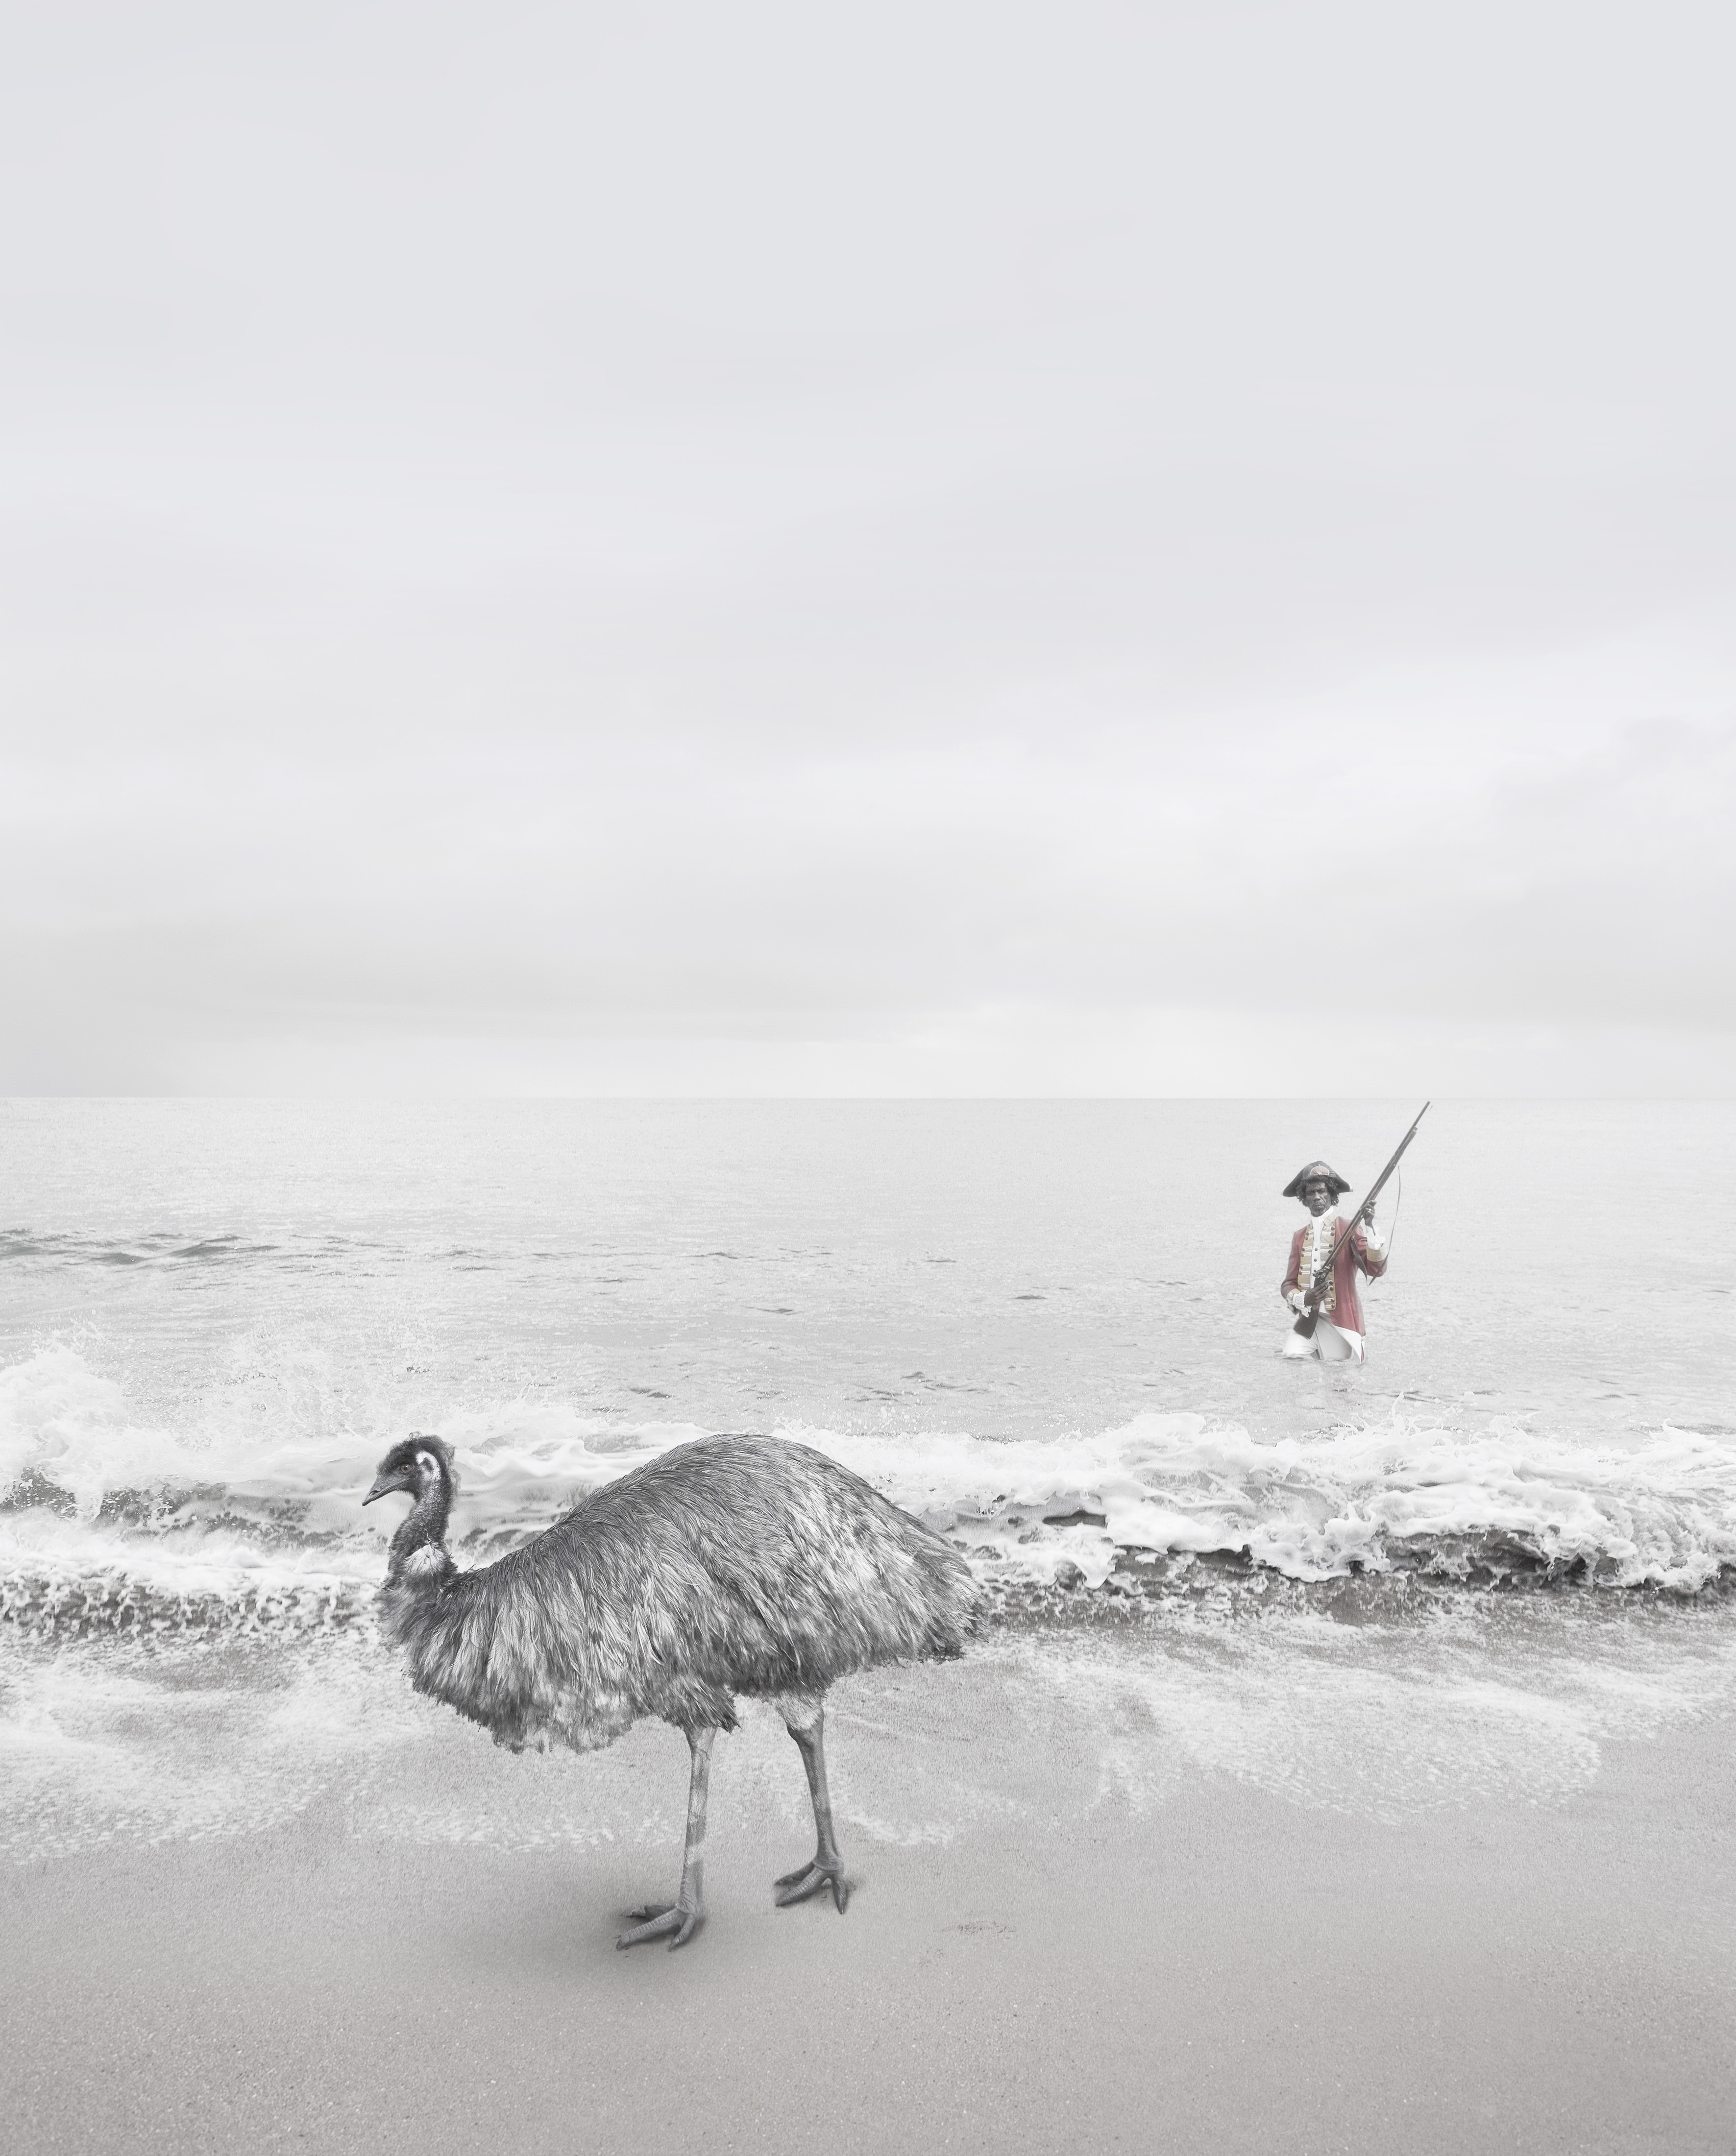 A composite image of an Aboriginal man in British naval dress coming to shore, and an emu on the beach.